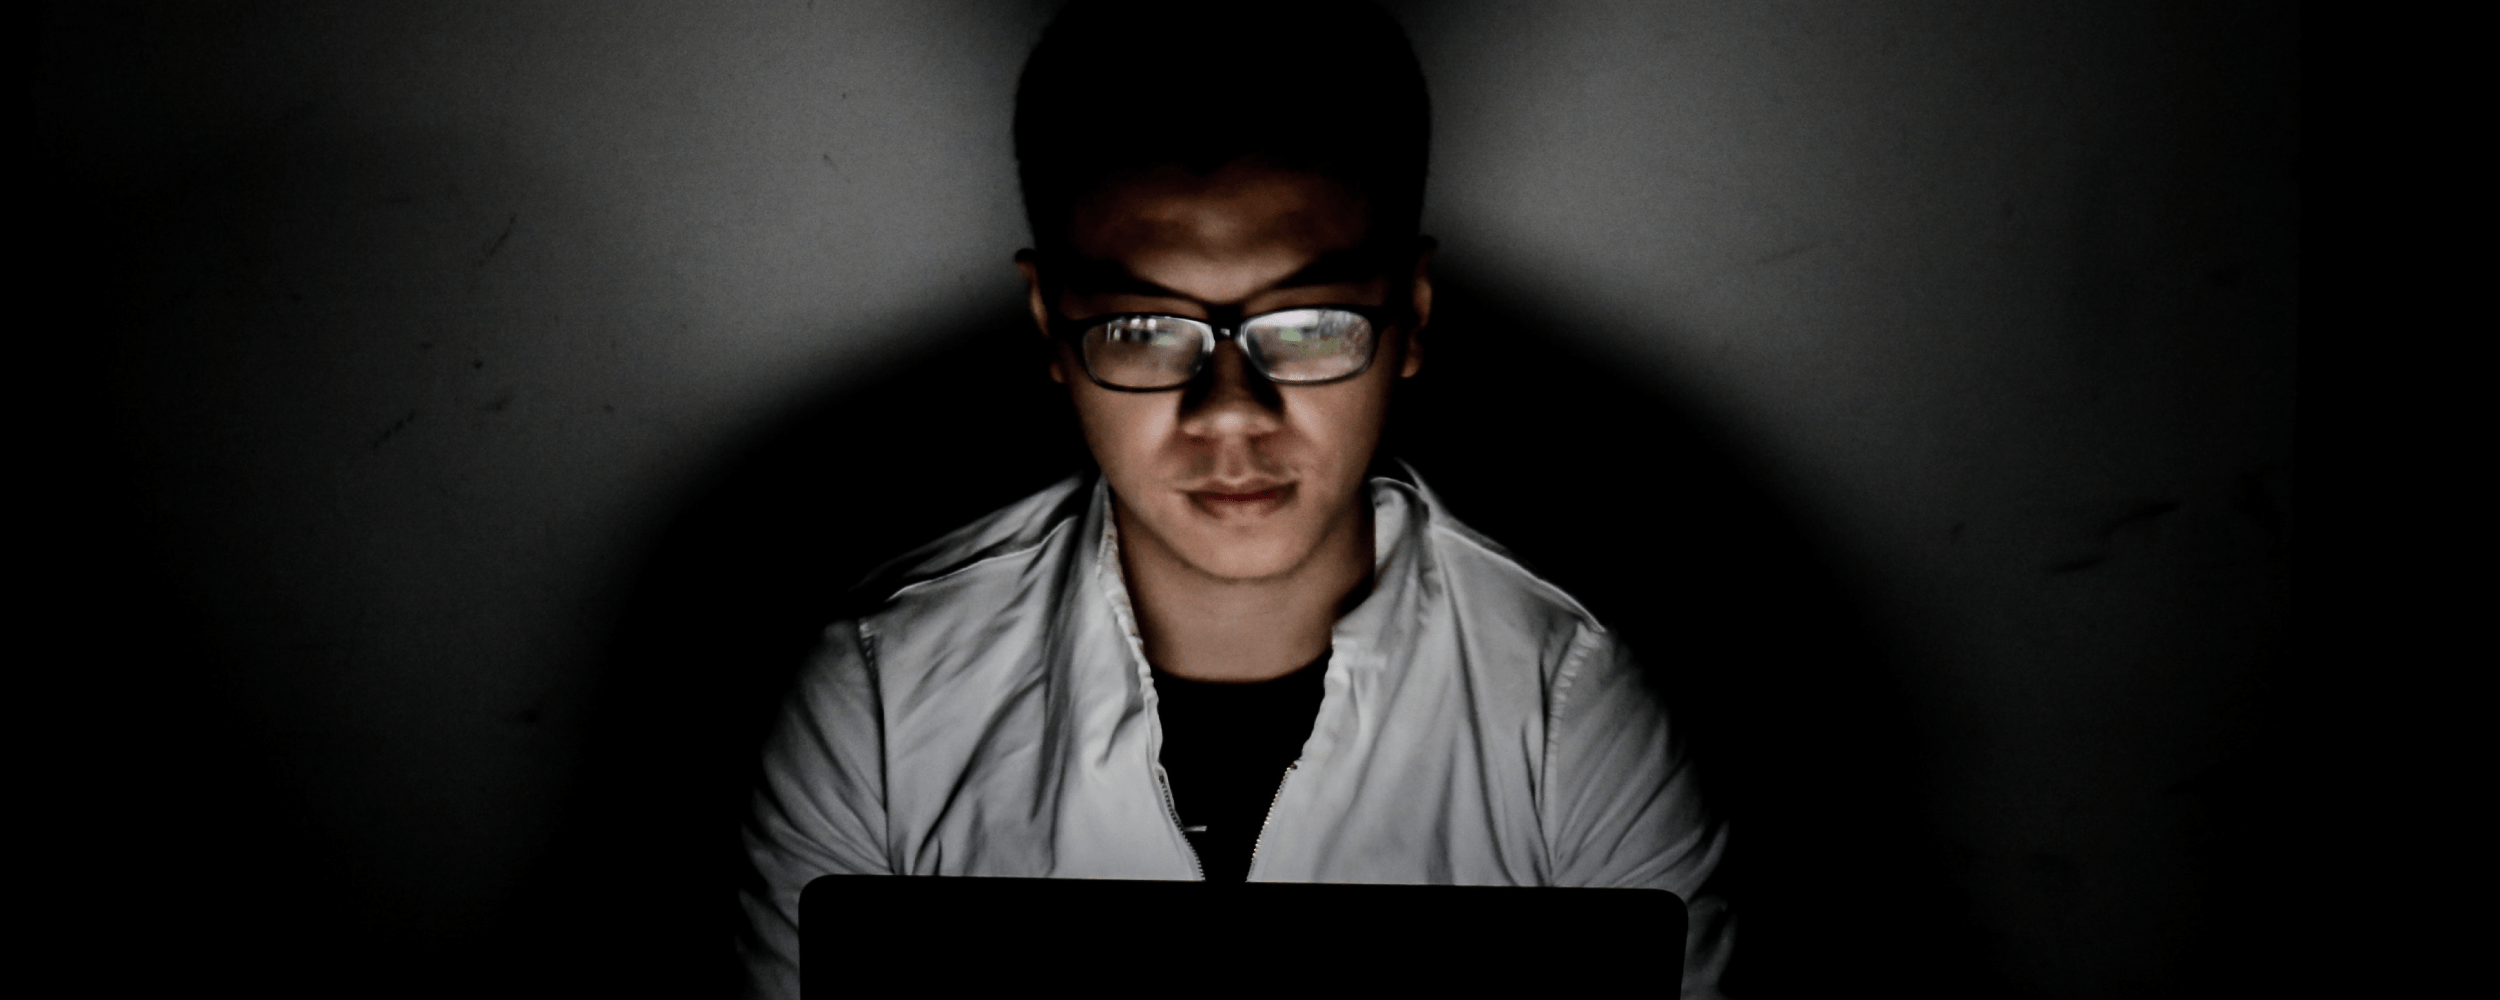 Man on computer in dark room